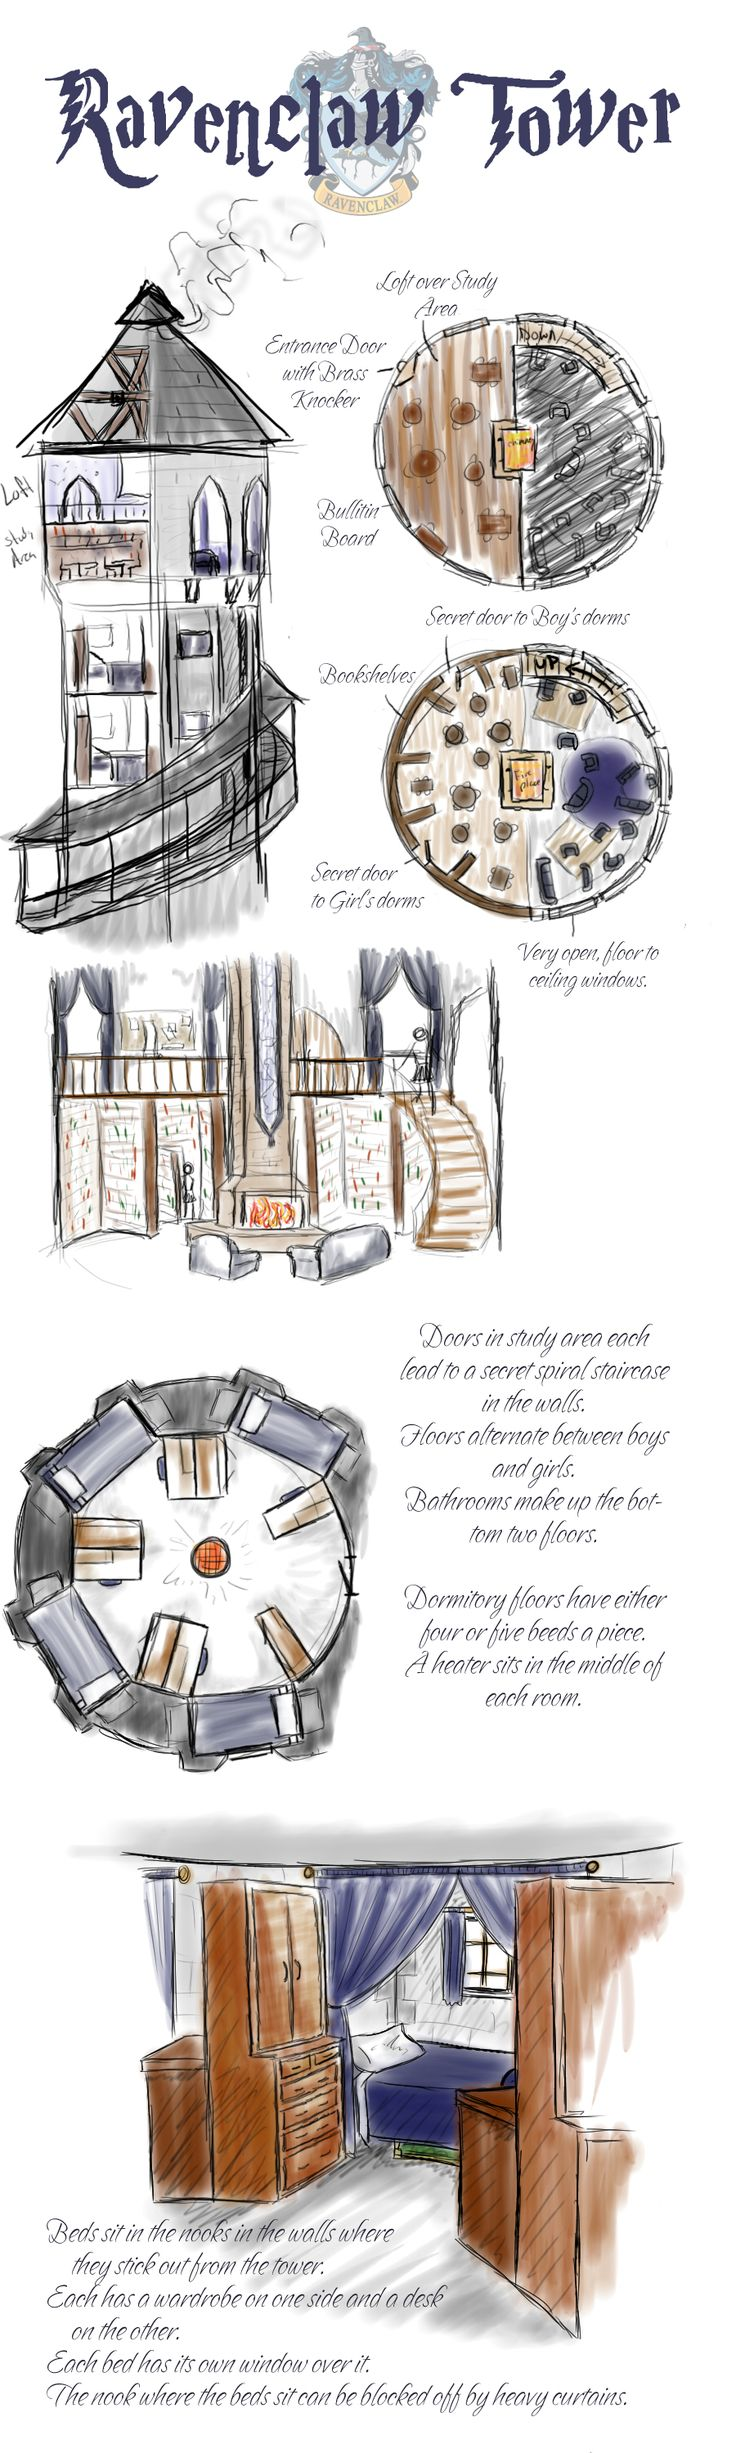 My Pottermore house… Ravenclaw Tower by *Whisperwings on deviantART there are drawings of all of the Hogwarts houses. Super